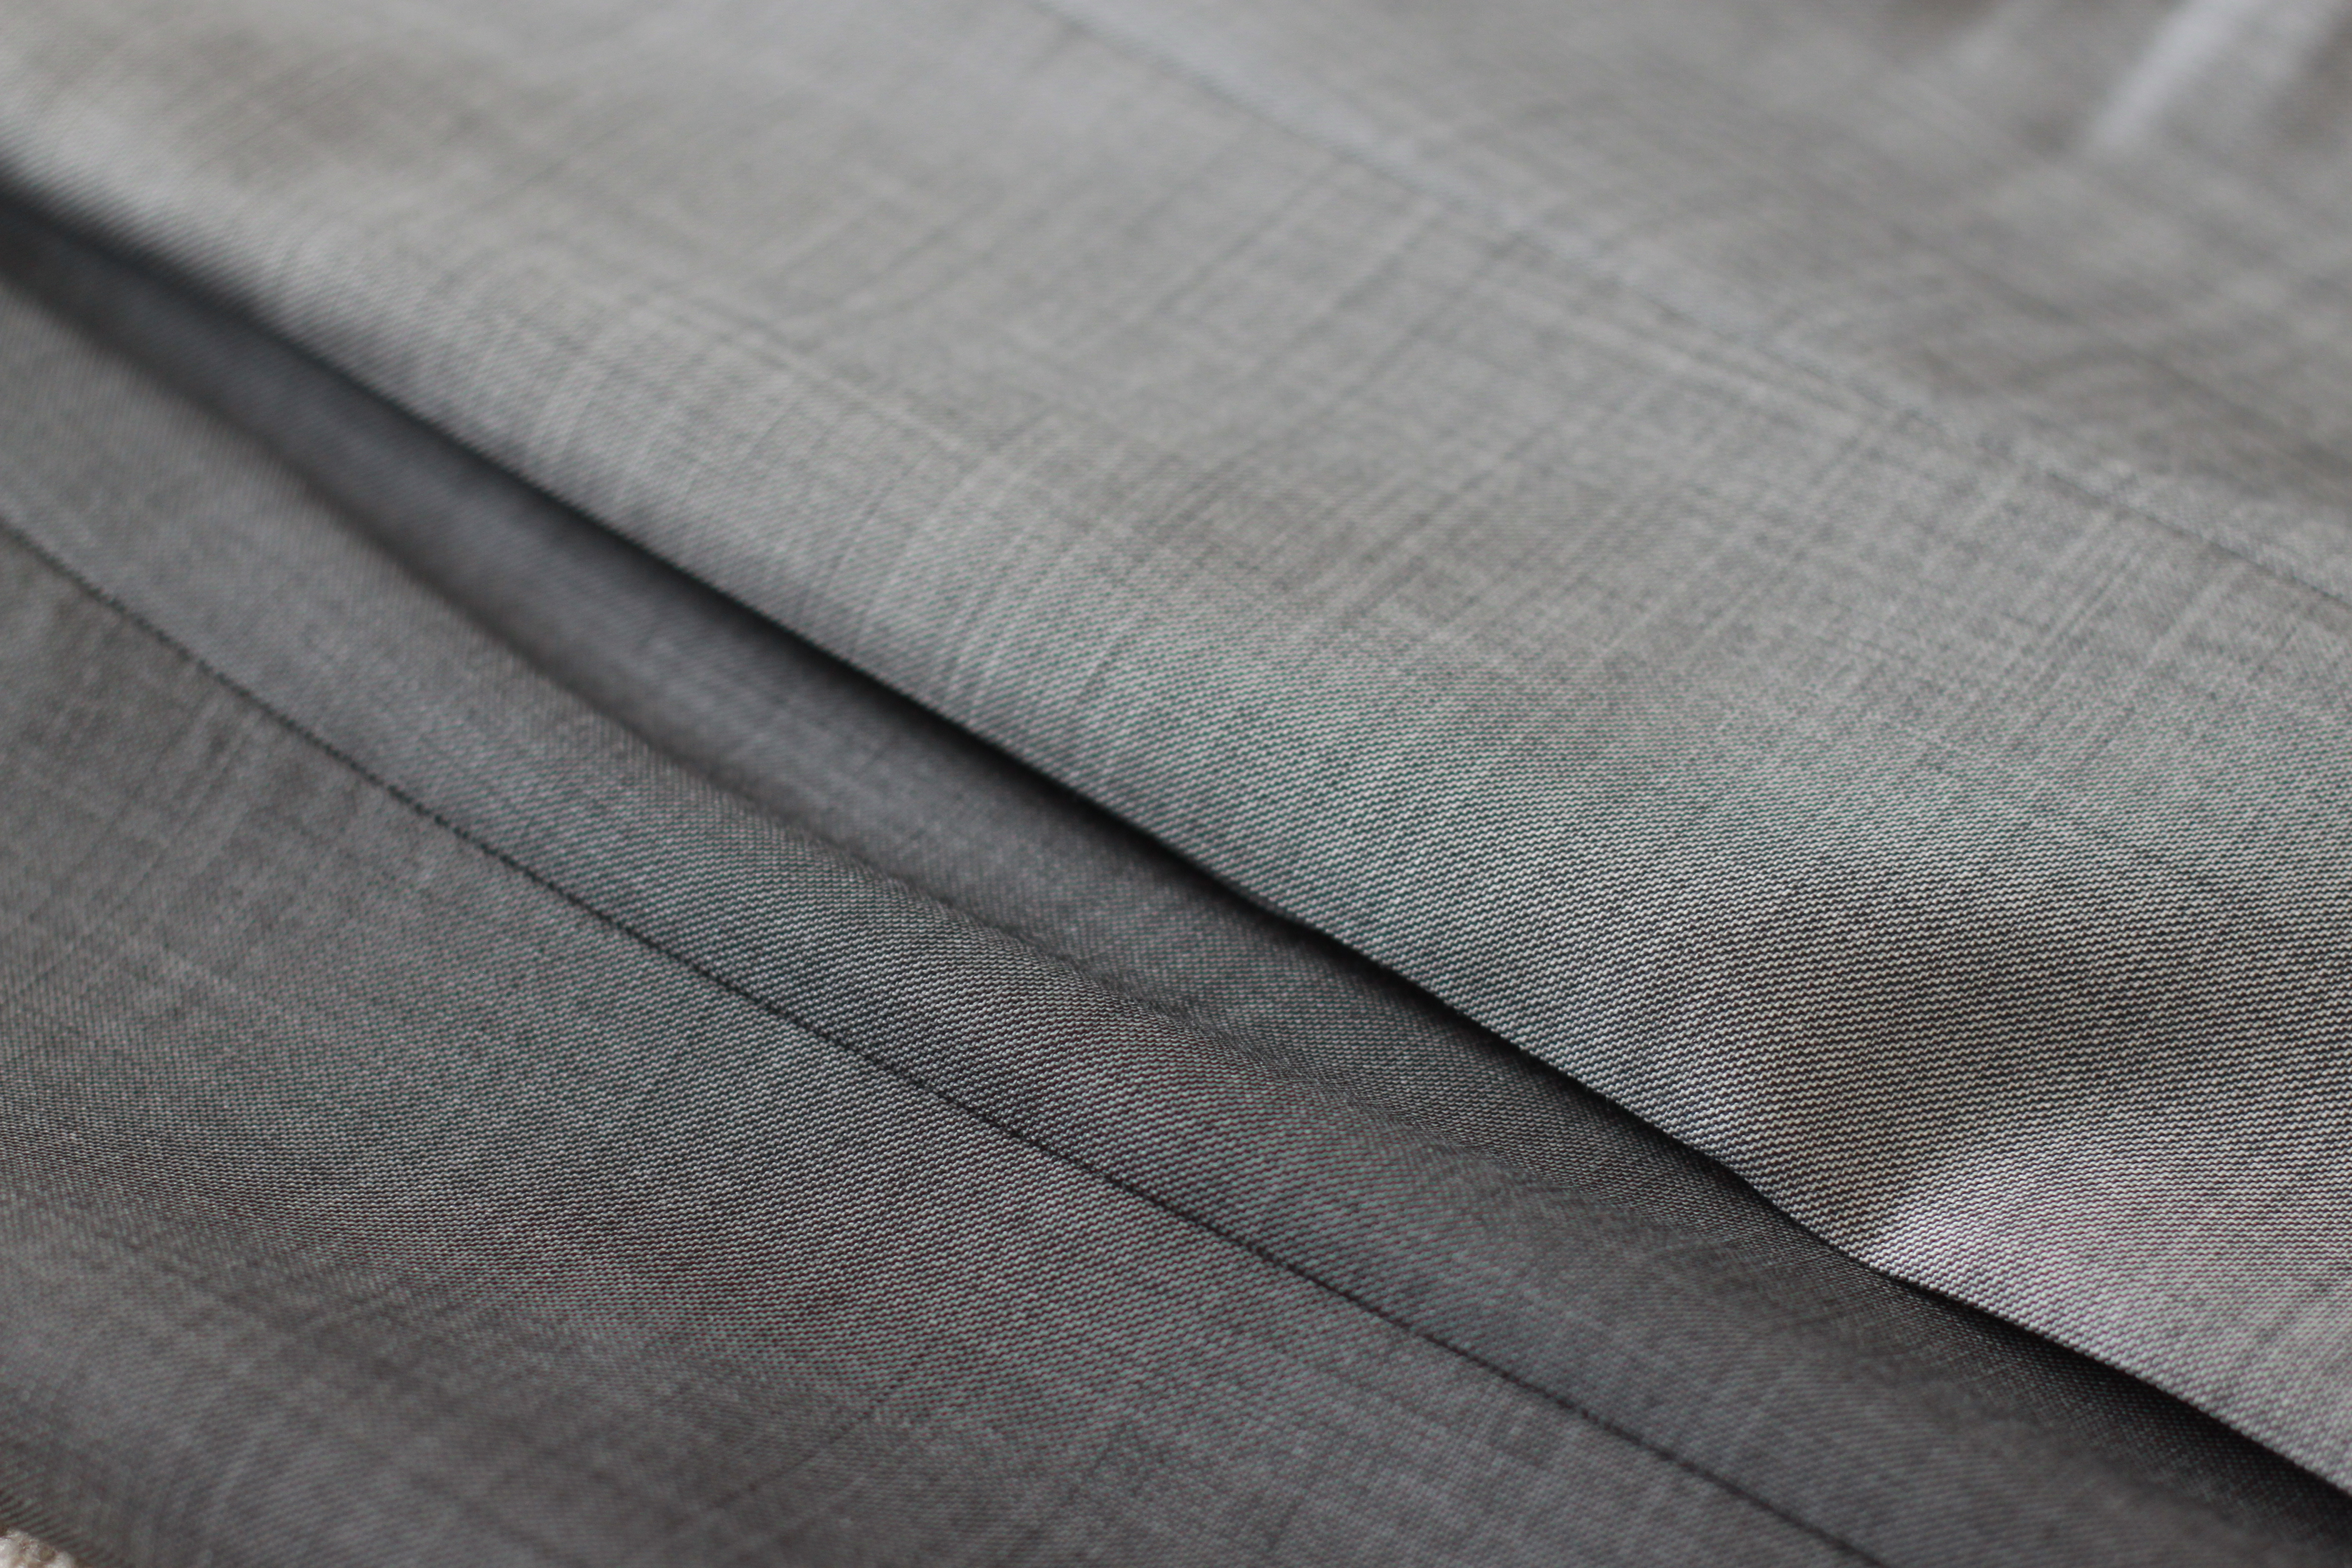 sharkskin, trousers, grey, mid grey, light grey, dress trousers